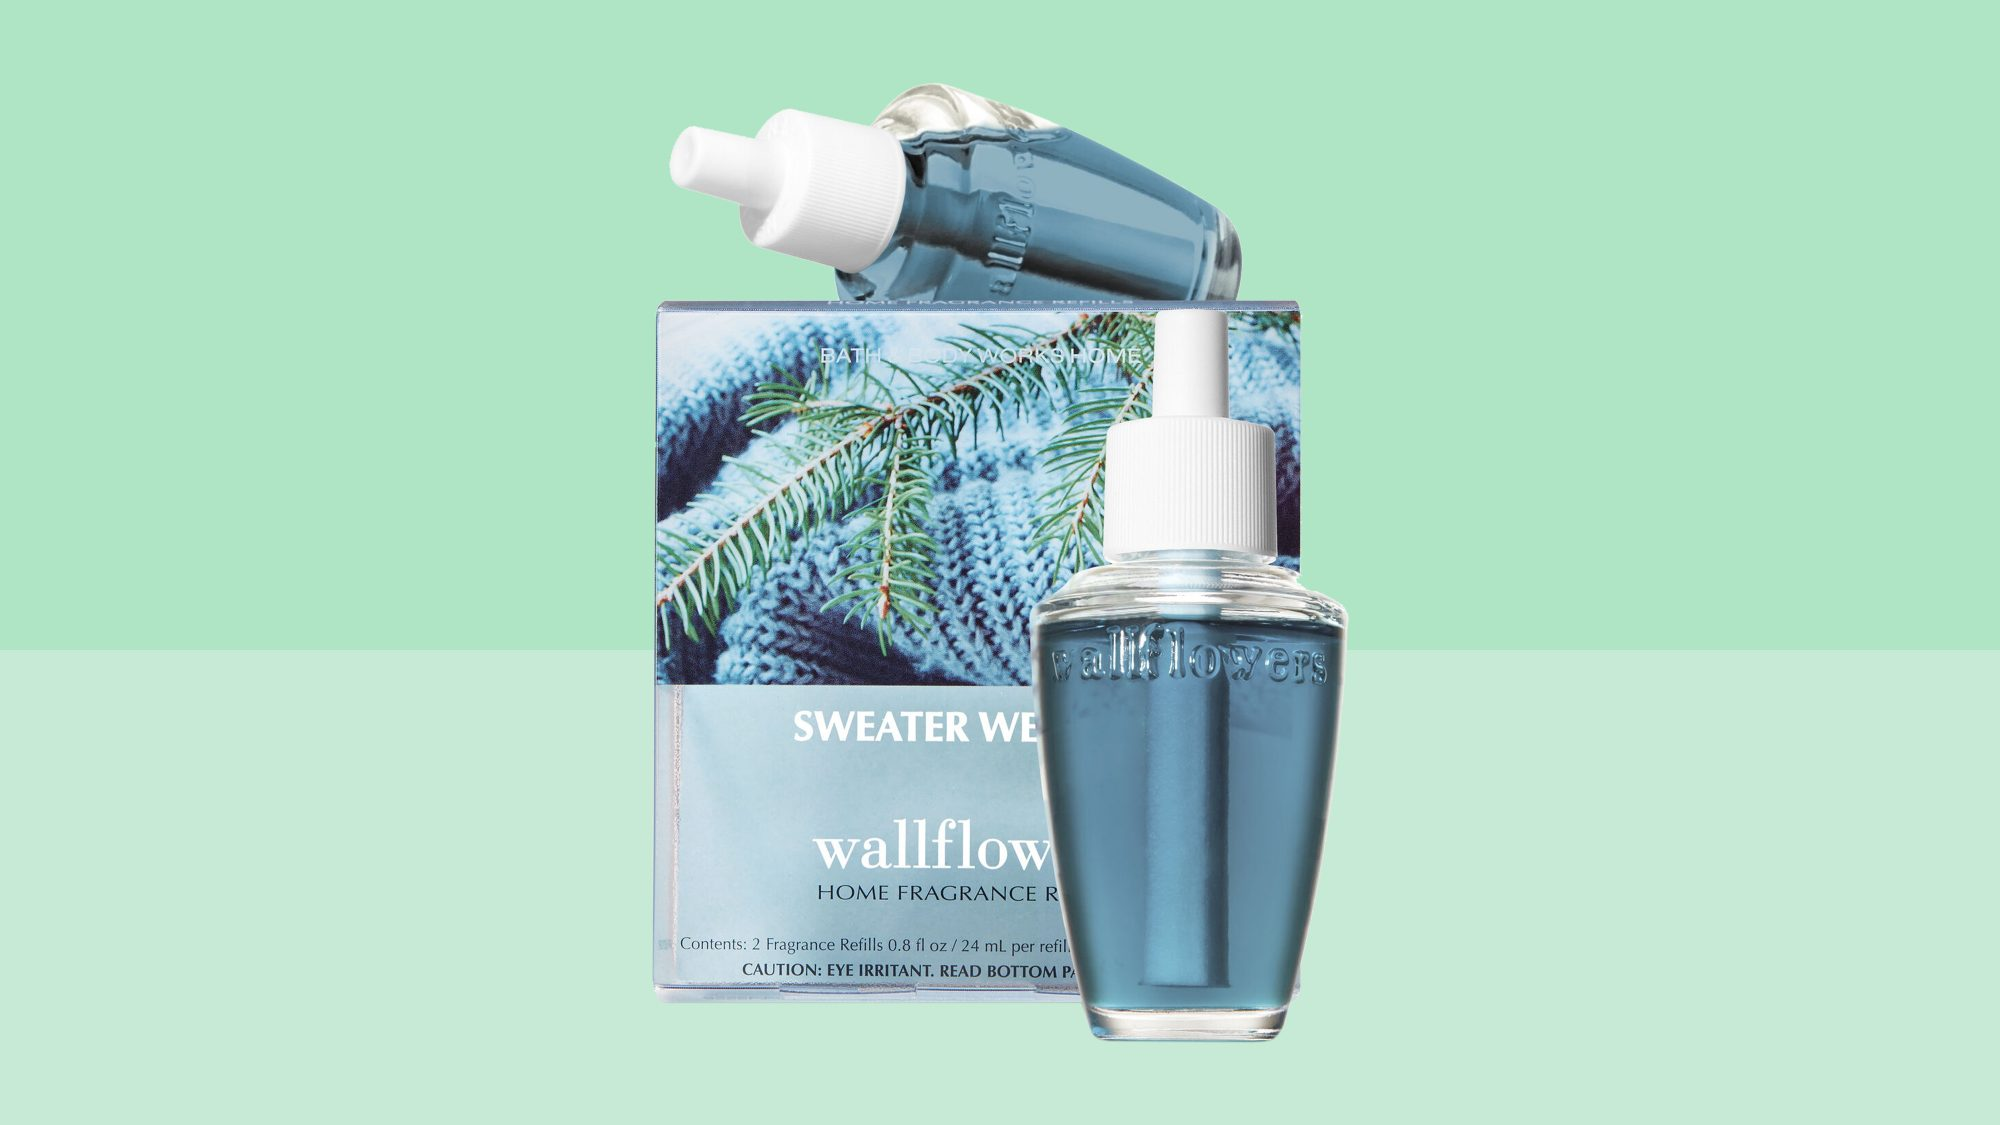 bath body works sweater weather wallflowers fragrance refill